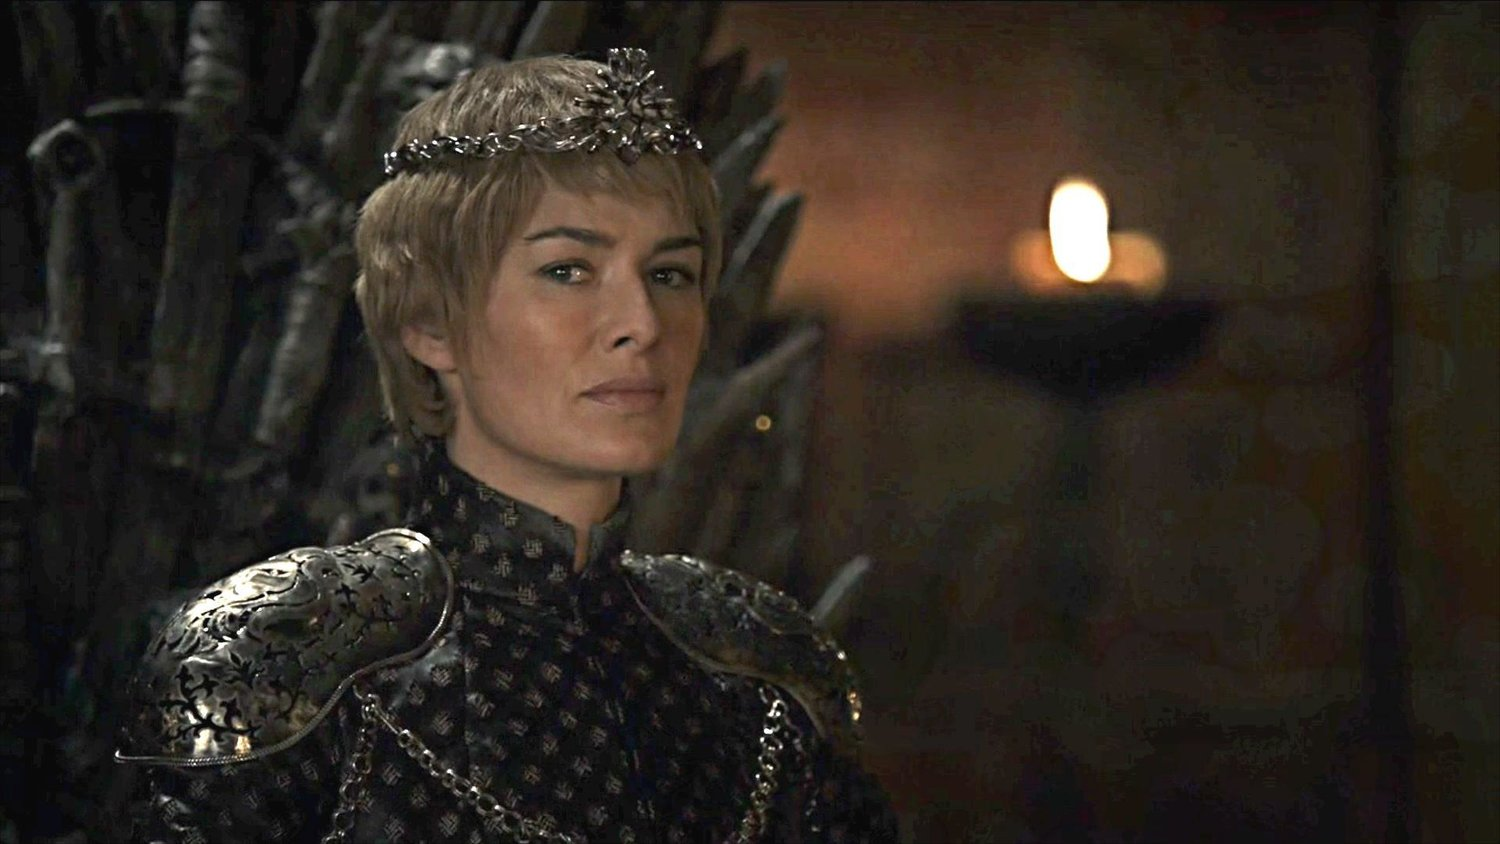 Catch A Brief Glimpse of Cersei and Oathkeeper in Teases for GAME OF THRONES Season 7